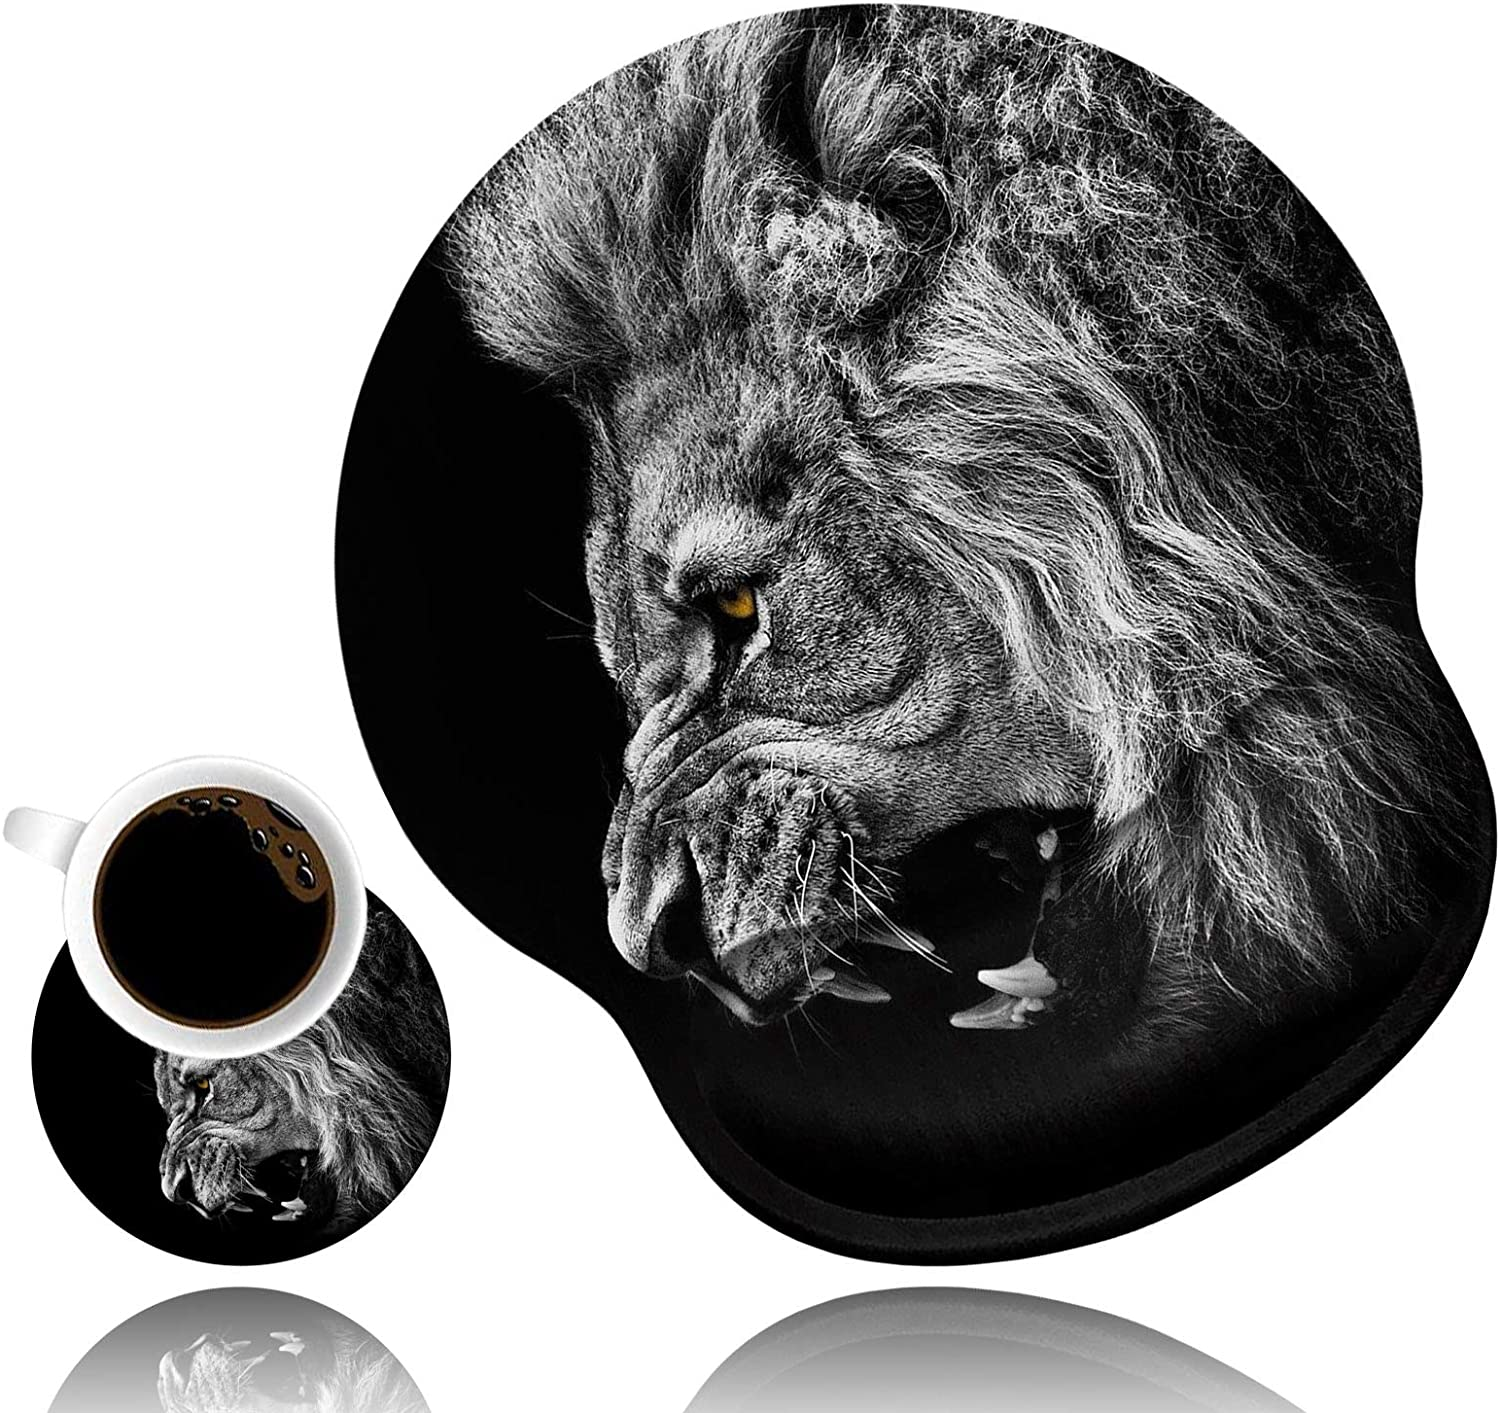 LACOMA Ergonomic Mouse Pad famous Wrist Coffee Cut Support and Popular product Coaster